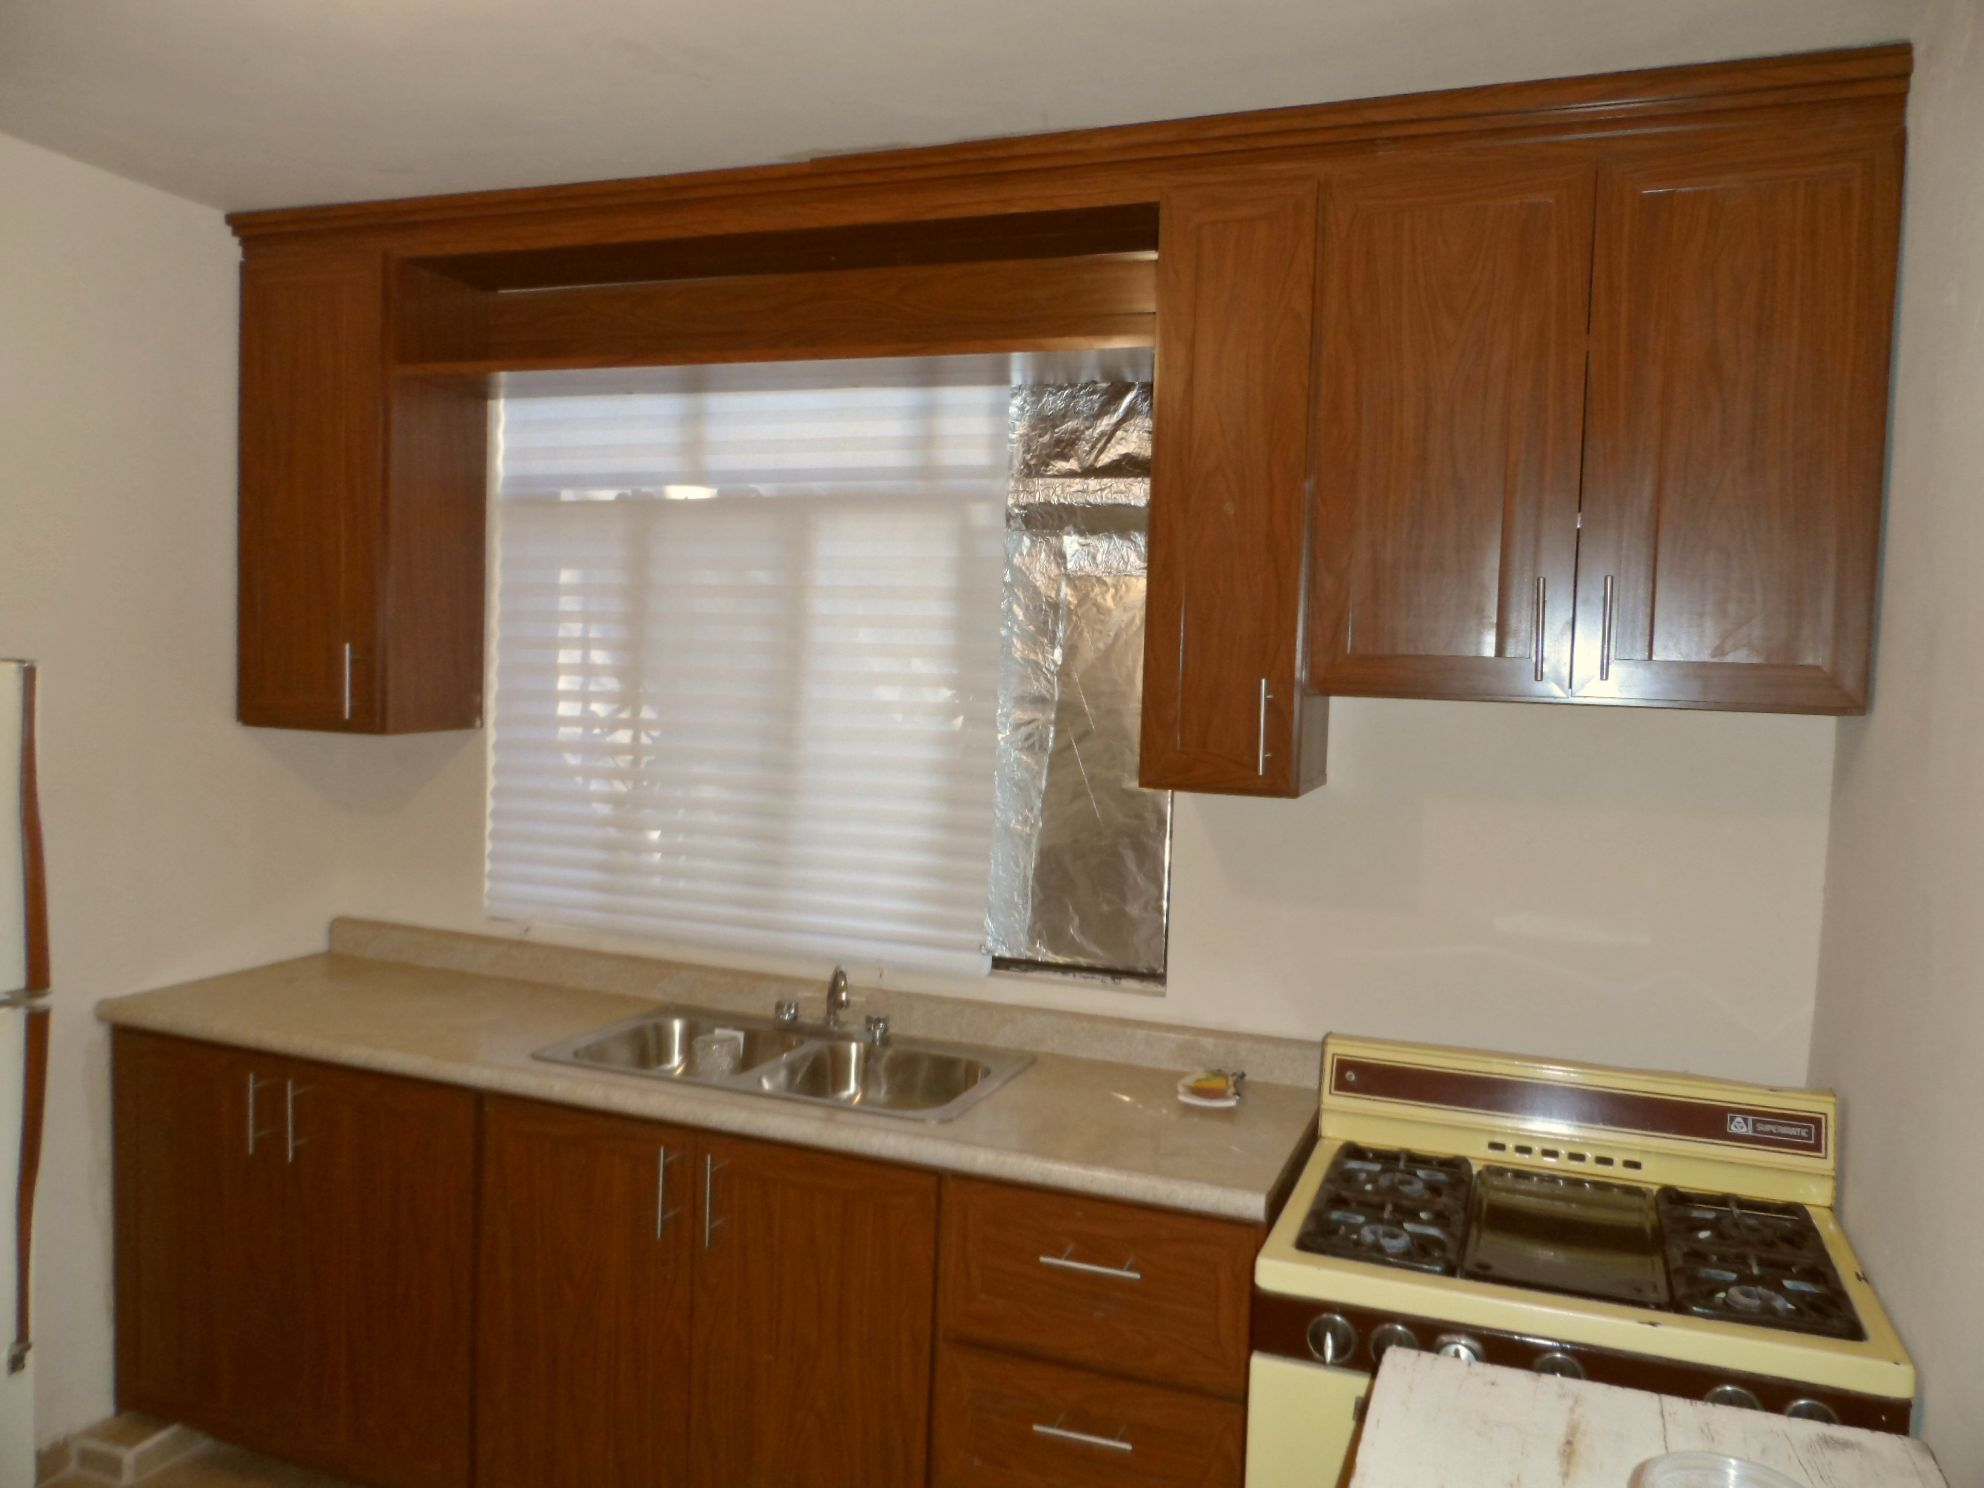 Plastic Kitchen Cabinets Are Used In Many Ways The Same As Regular Wood  Cabinets, But With More Advantages As Follows: